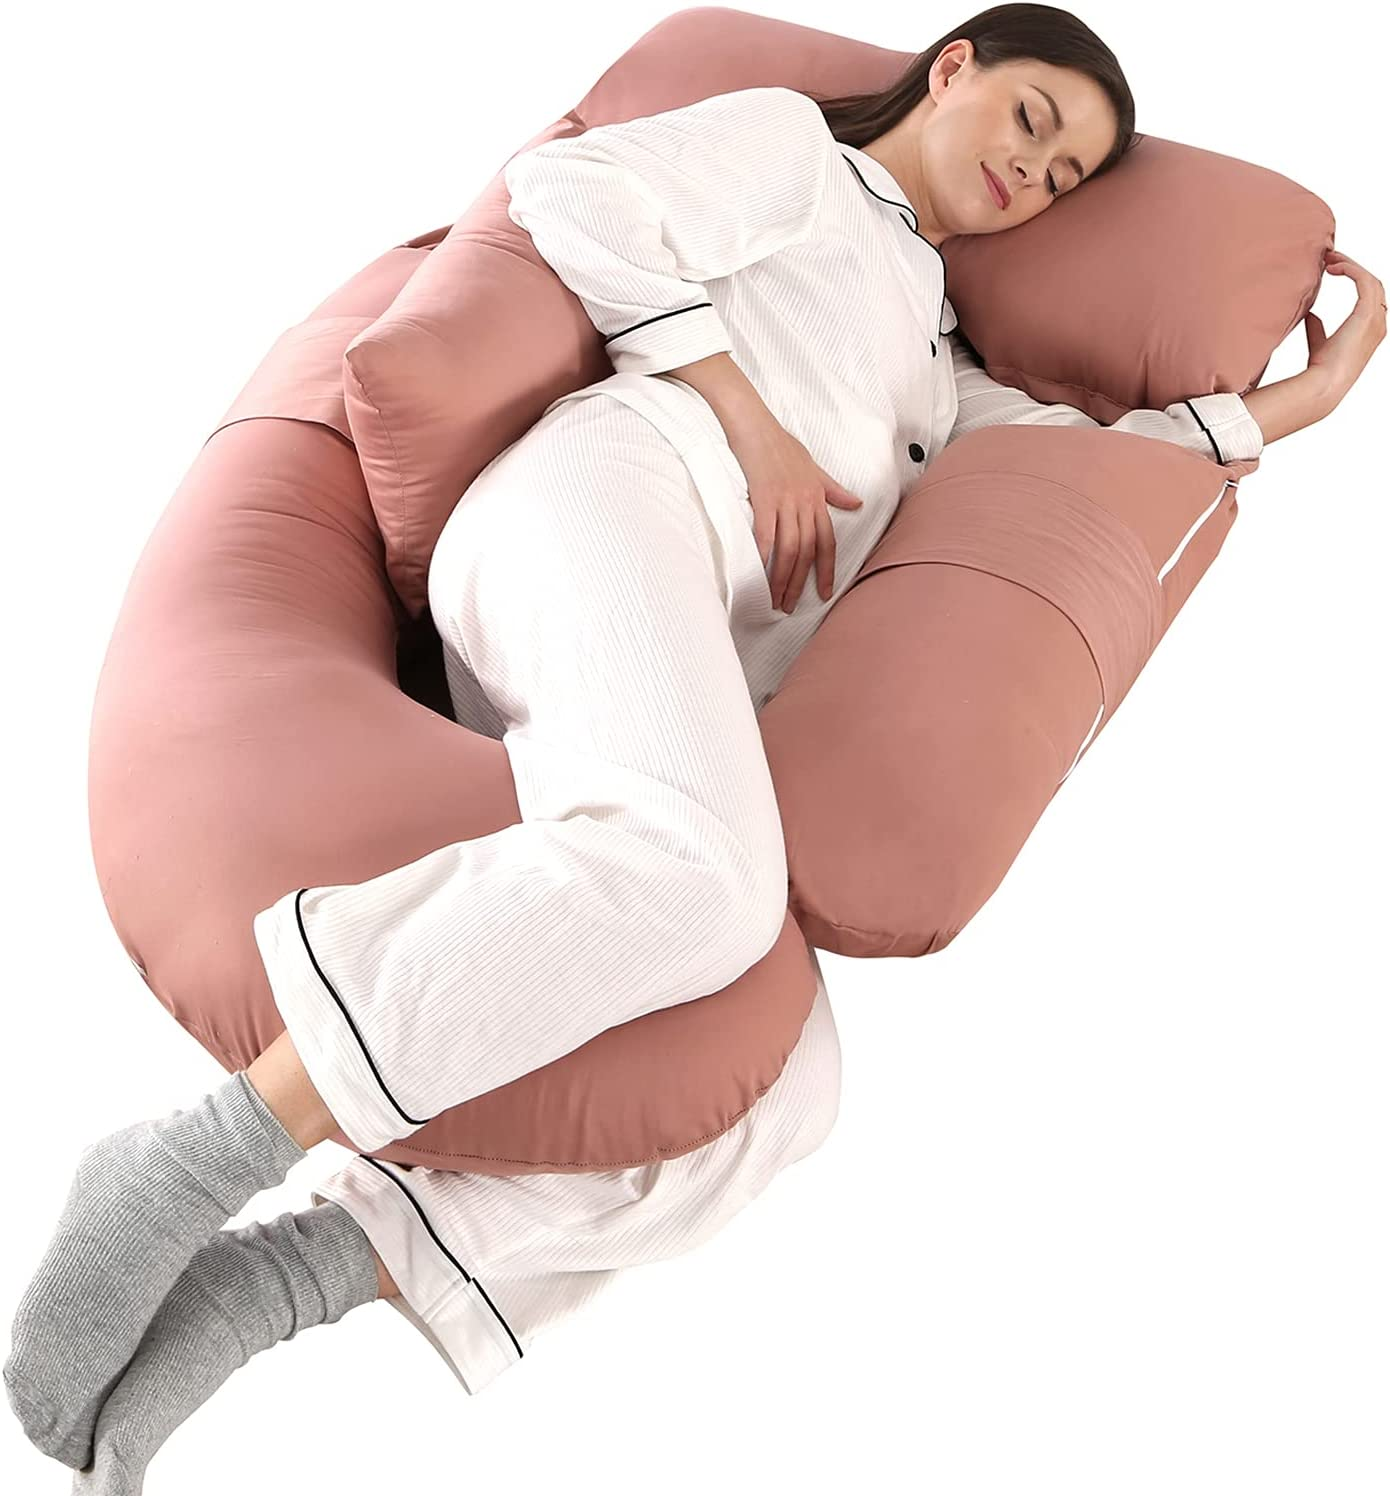 Pregnancy Pillows for Sleeping Detachable U Shaped Full Body Pillow HINAPRAM Maternity Pillows for Sleeping 55 inches Pregnancy Body Pillow with Cotton Cover(Pink)